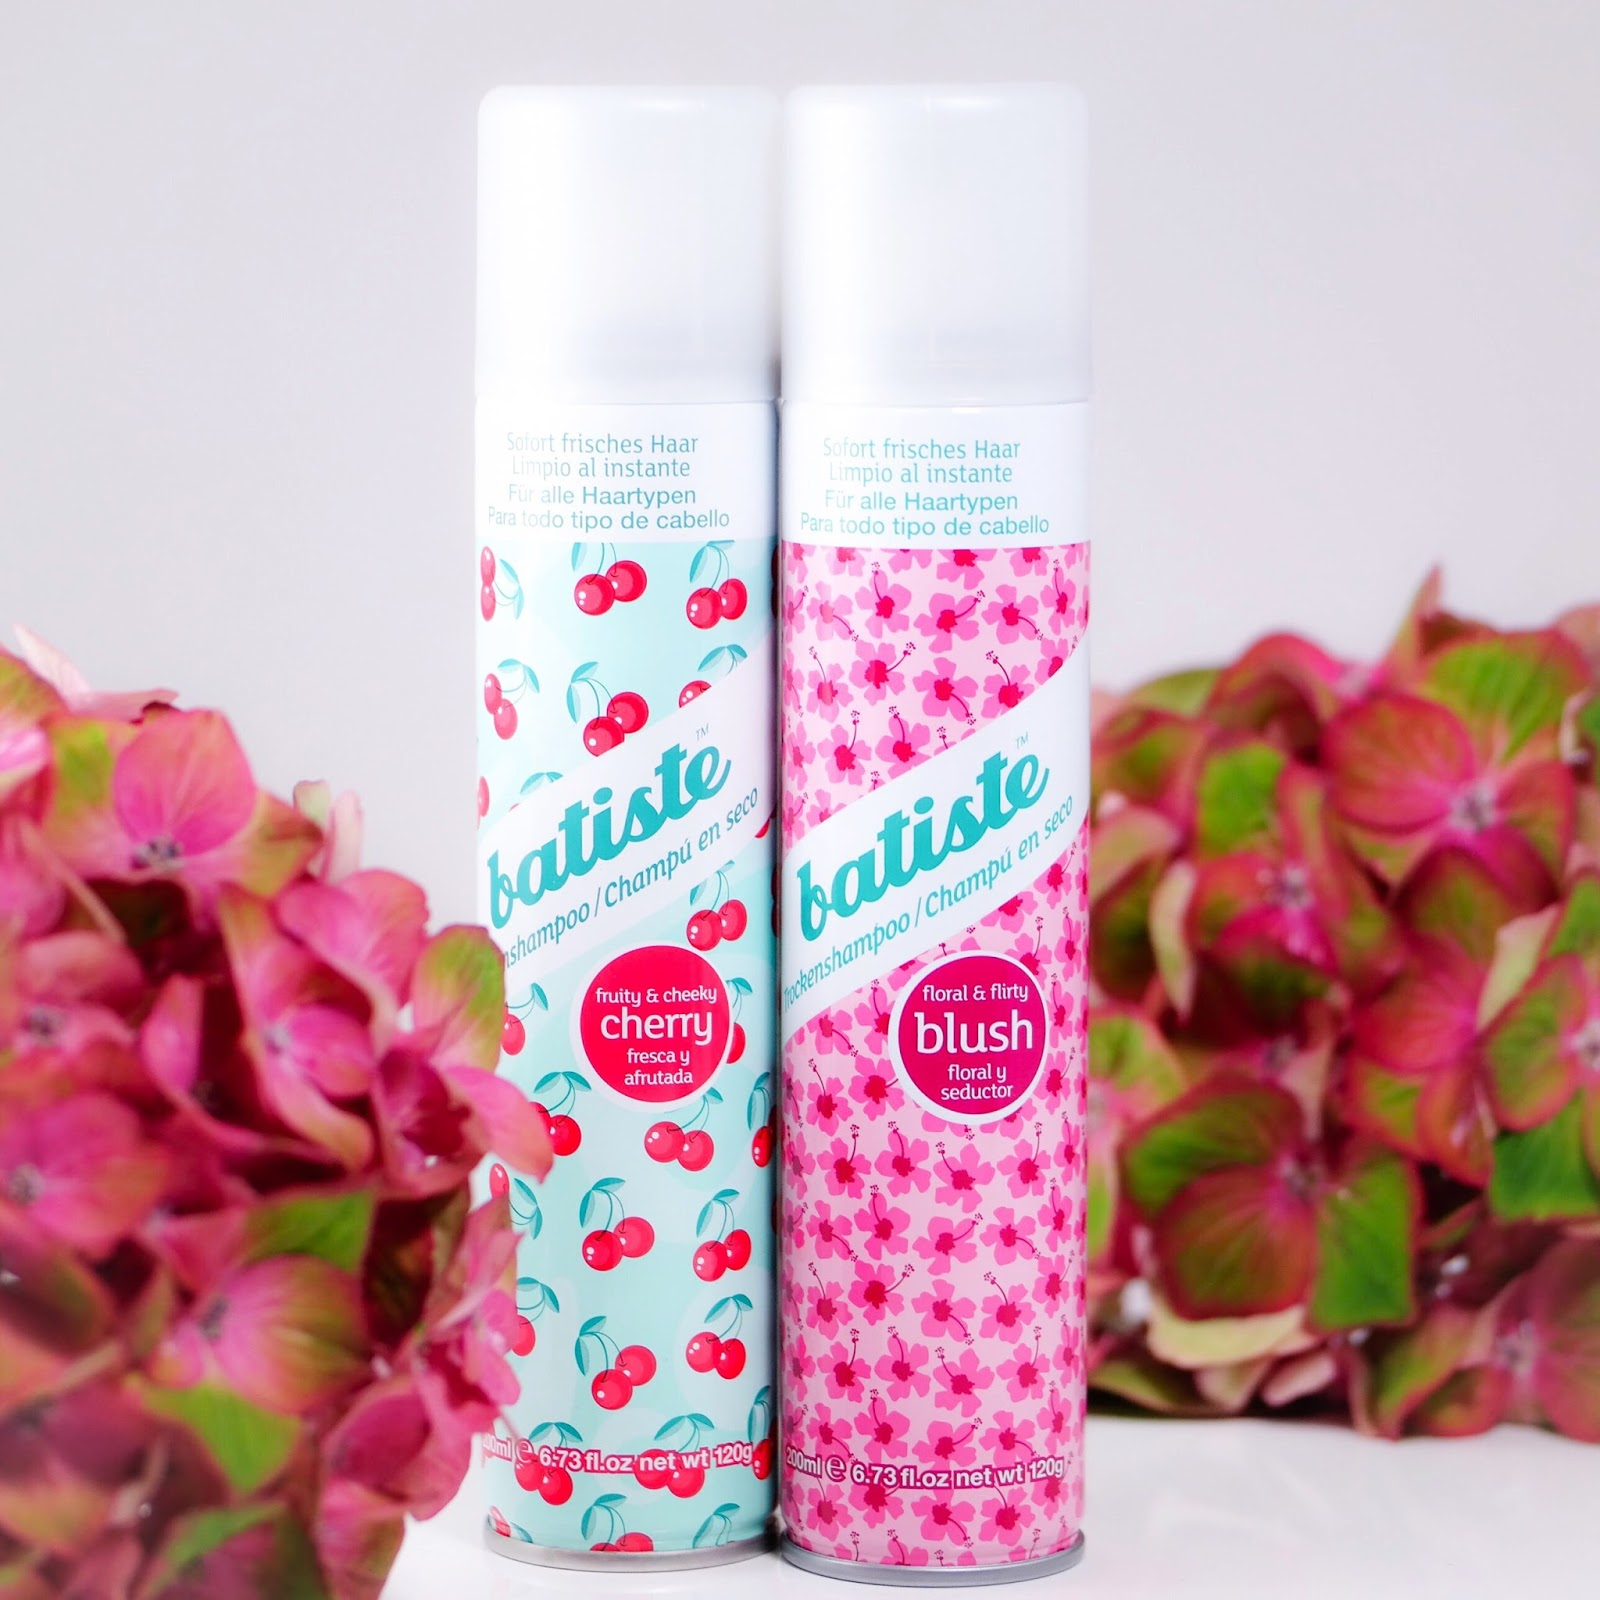 batiste trockenshampoo review wassermilchhonig. Black Bedroom Furniture Sets. Home Design Ideas